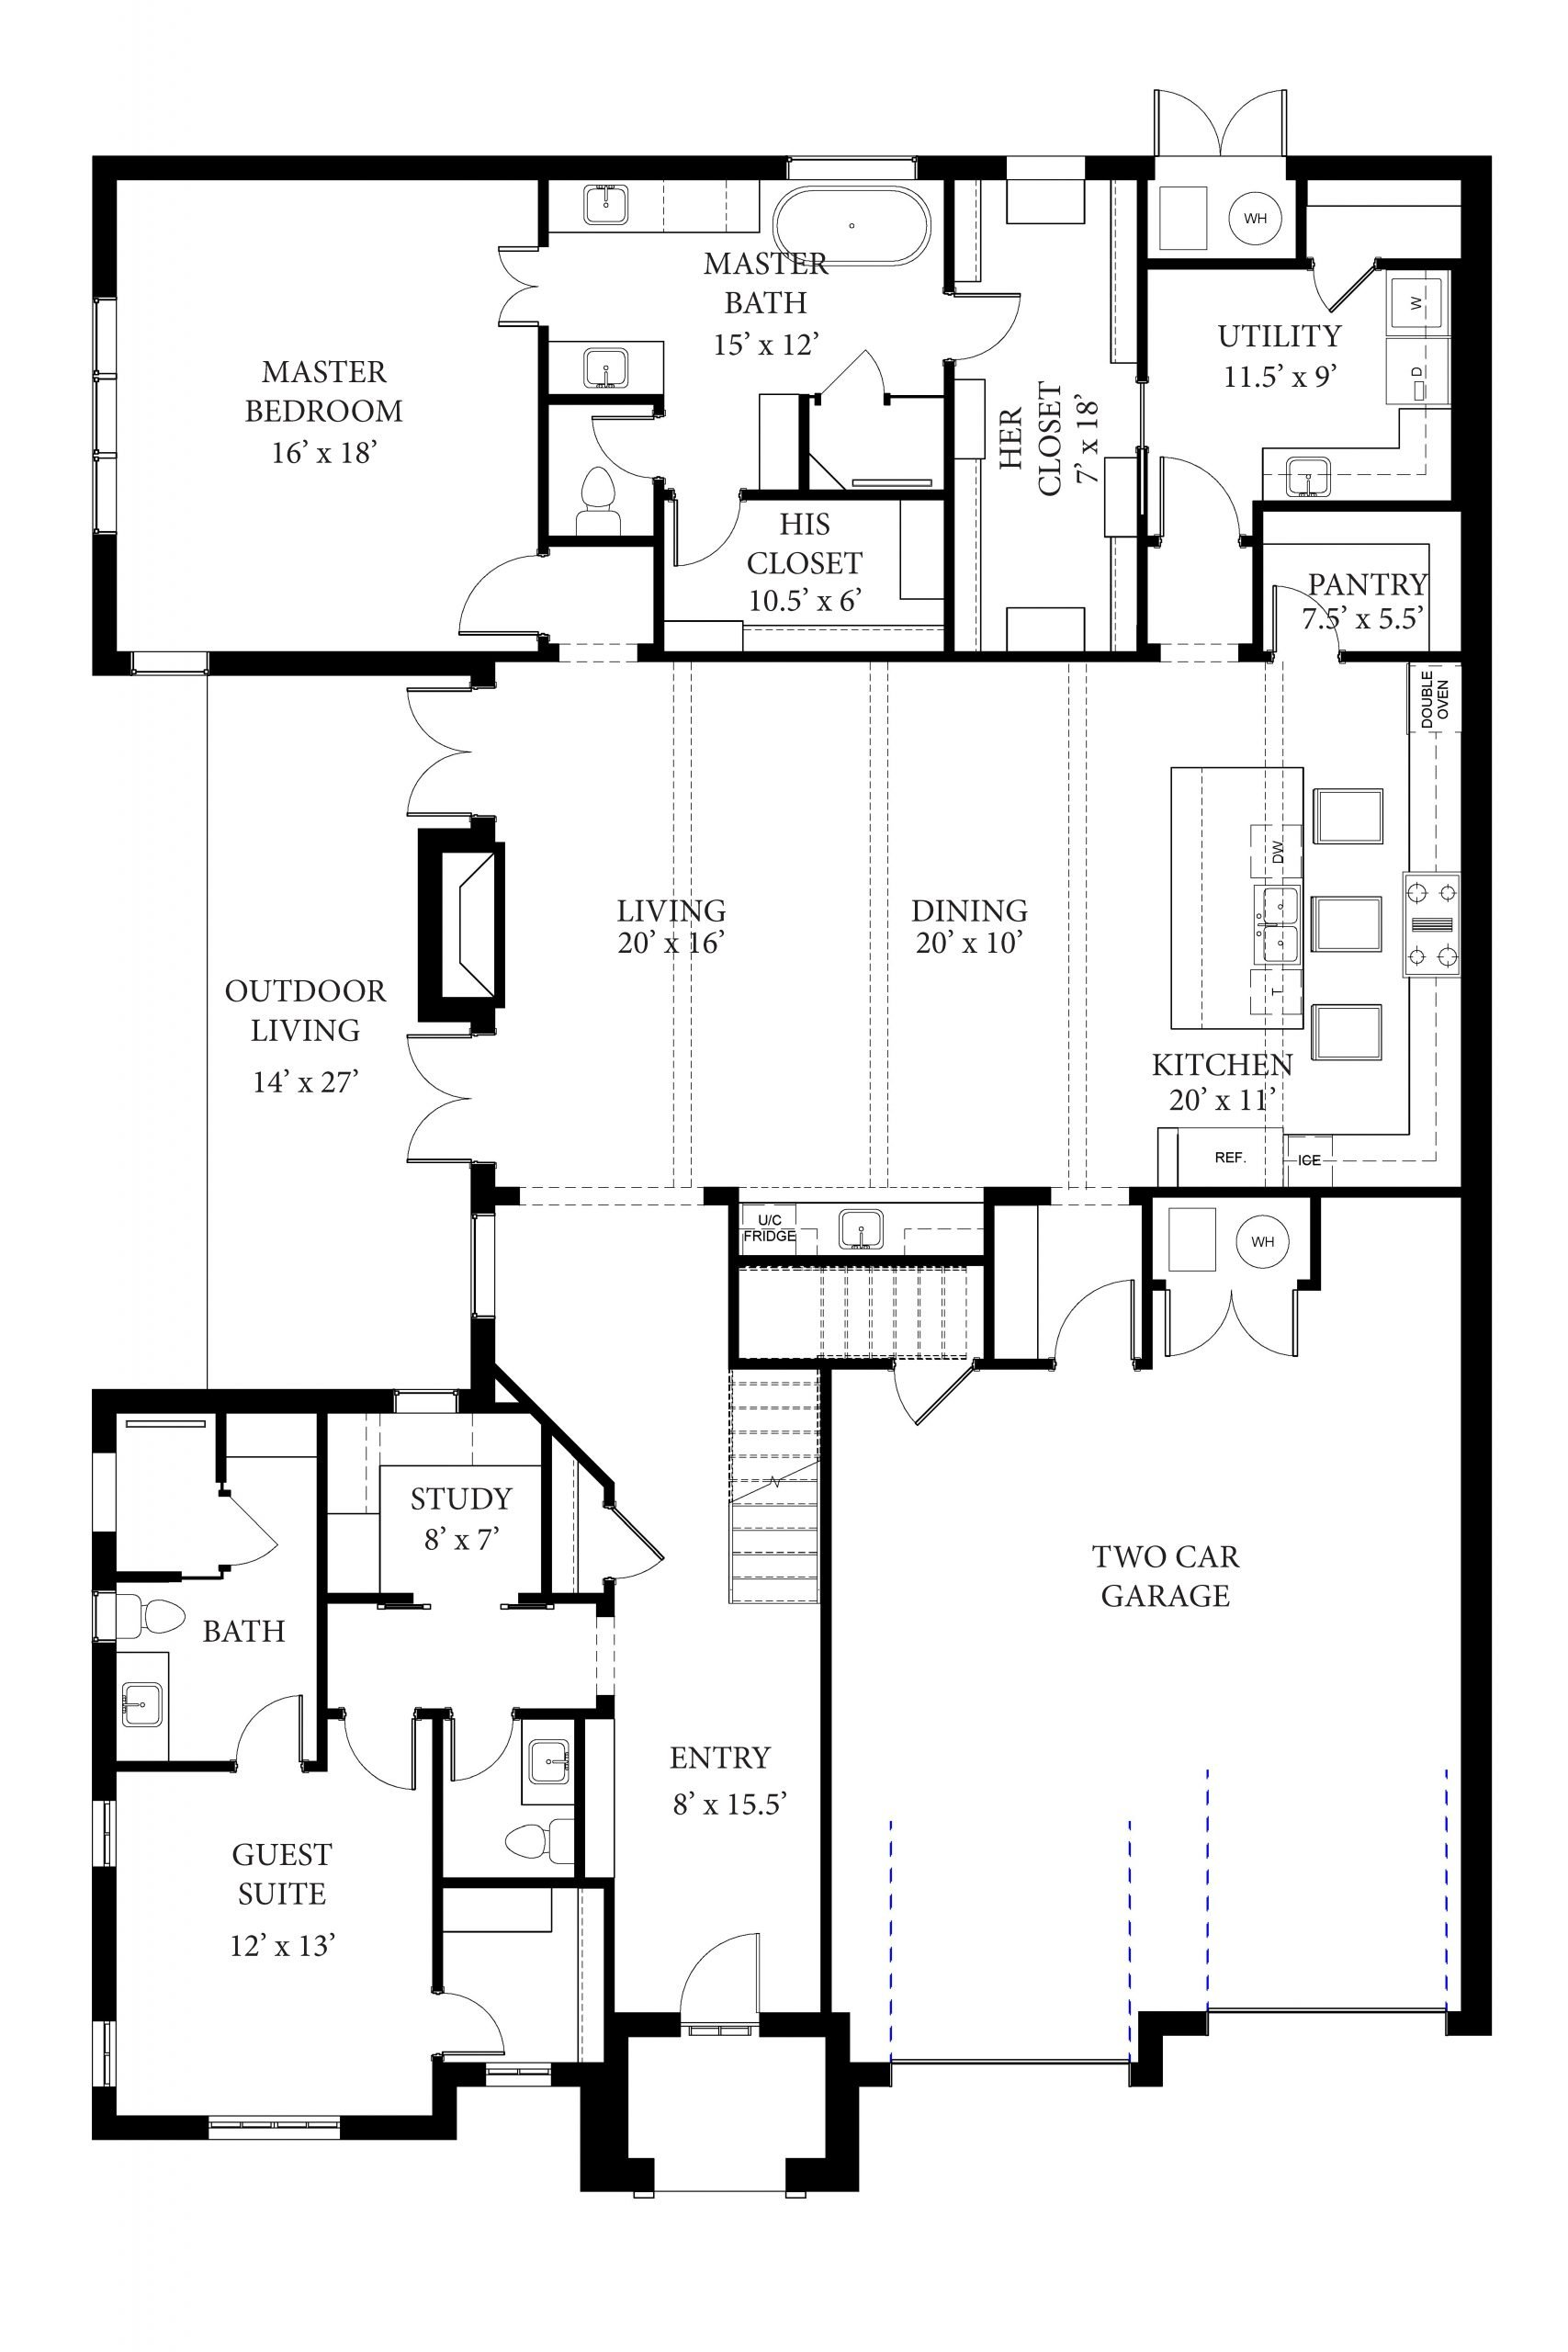 15605 Woodleaf - Miramont - Floor Plan Updated